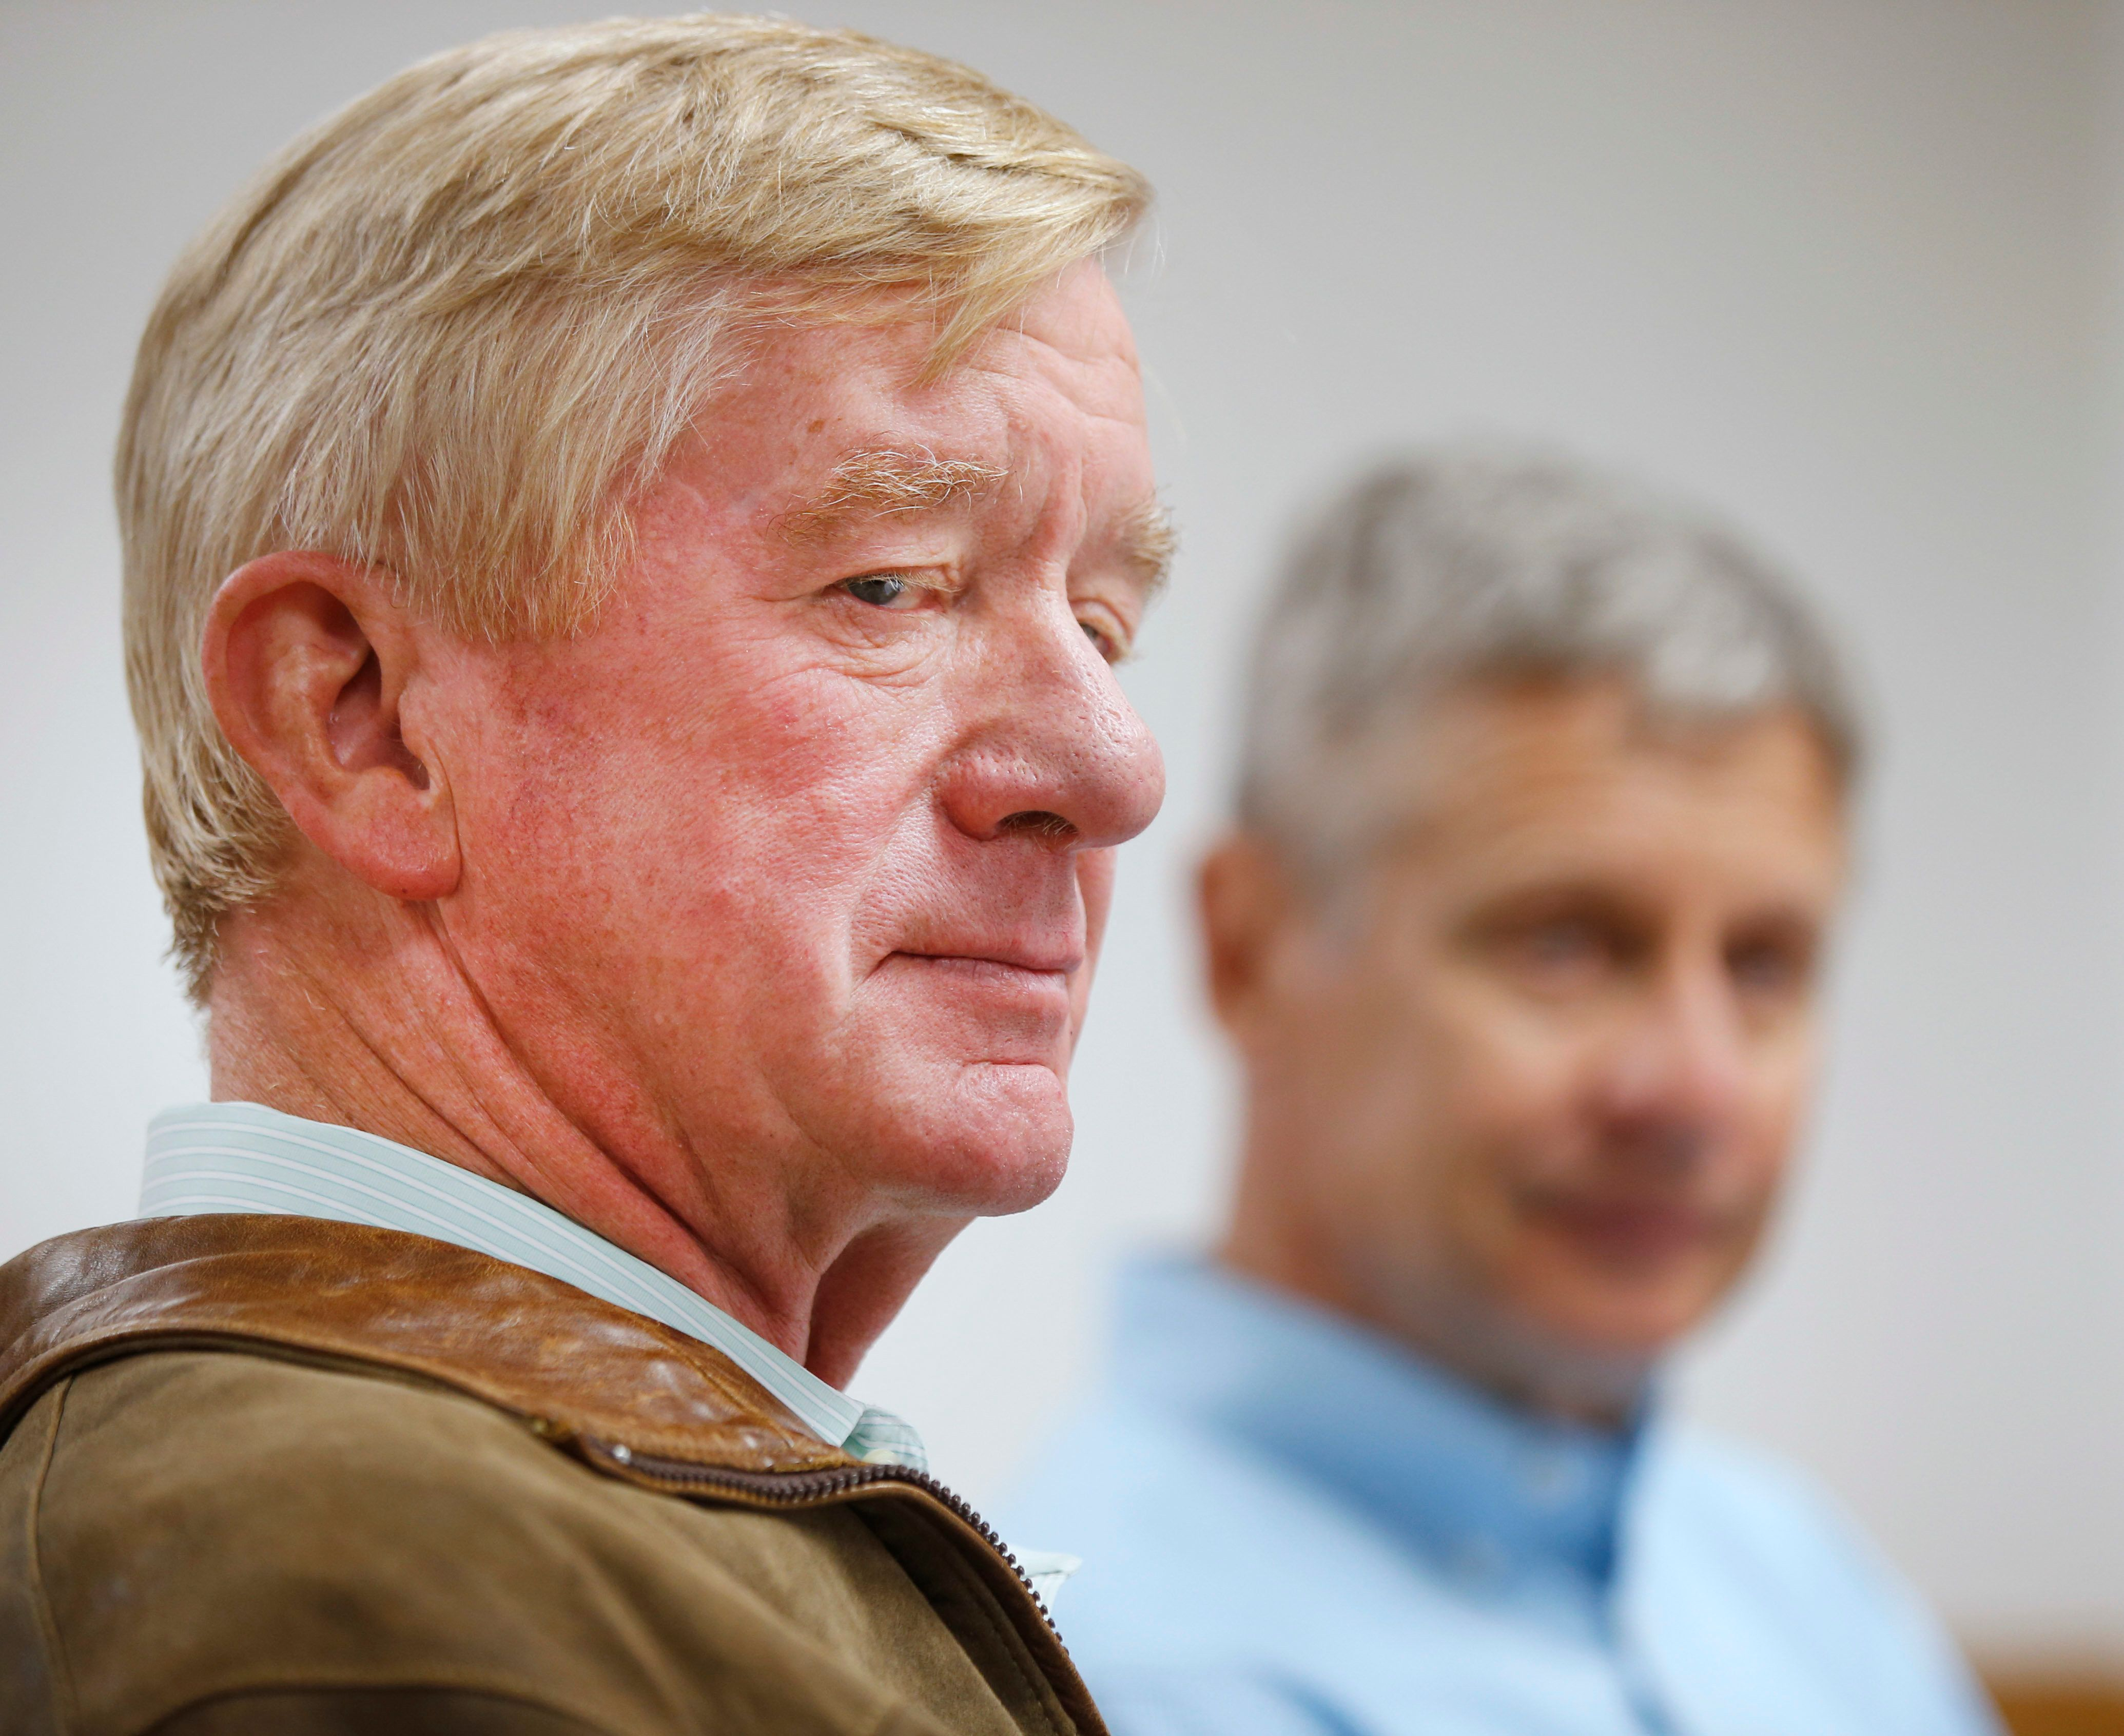 SALT LAKE CITY, UT - AUGUST 6: Libertarian presidential candidate Gary Johnson (R), and his running mate Bill Weld (L), talk to the press before a rally on August 6, 2015 in Salt Lake City, Utah. Johnson and Weld have spent the day campaigning in Salt Lake City, the home town of former republican presidential candidate Mitt Romney.  (Photo by George Frey/Getty Images)